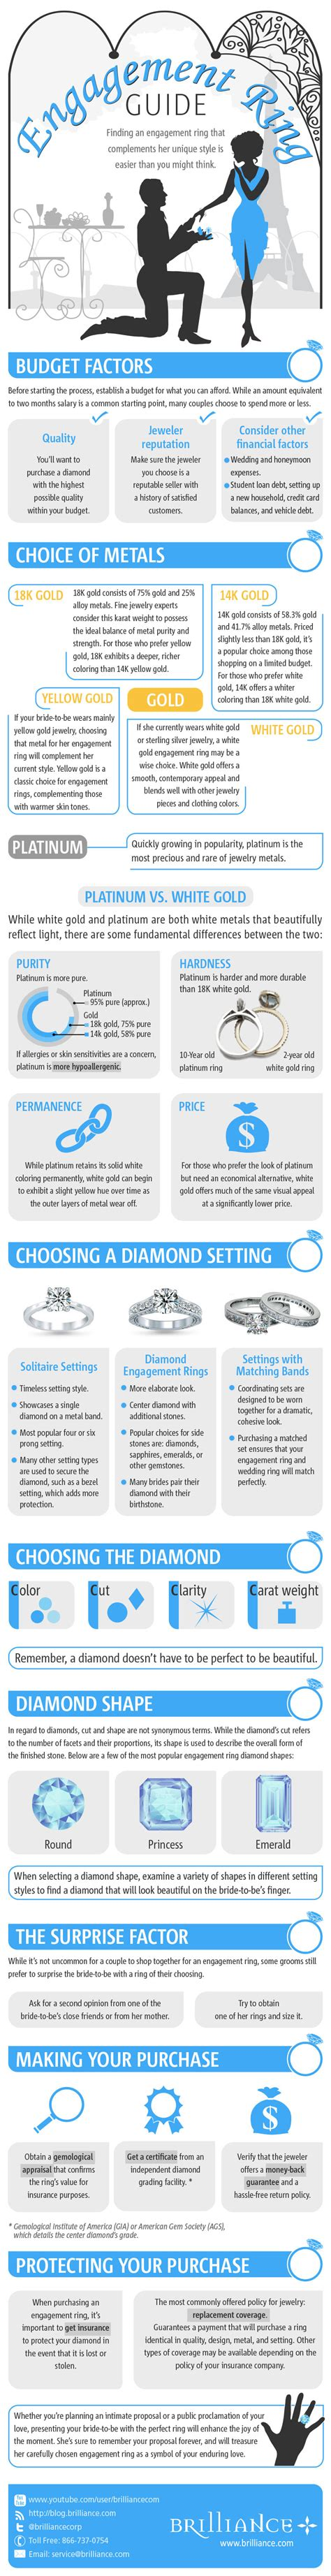 engagement ring guide infographic